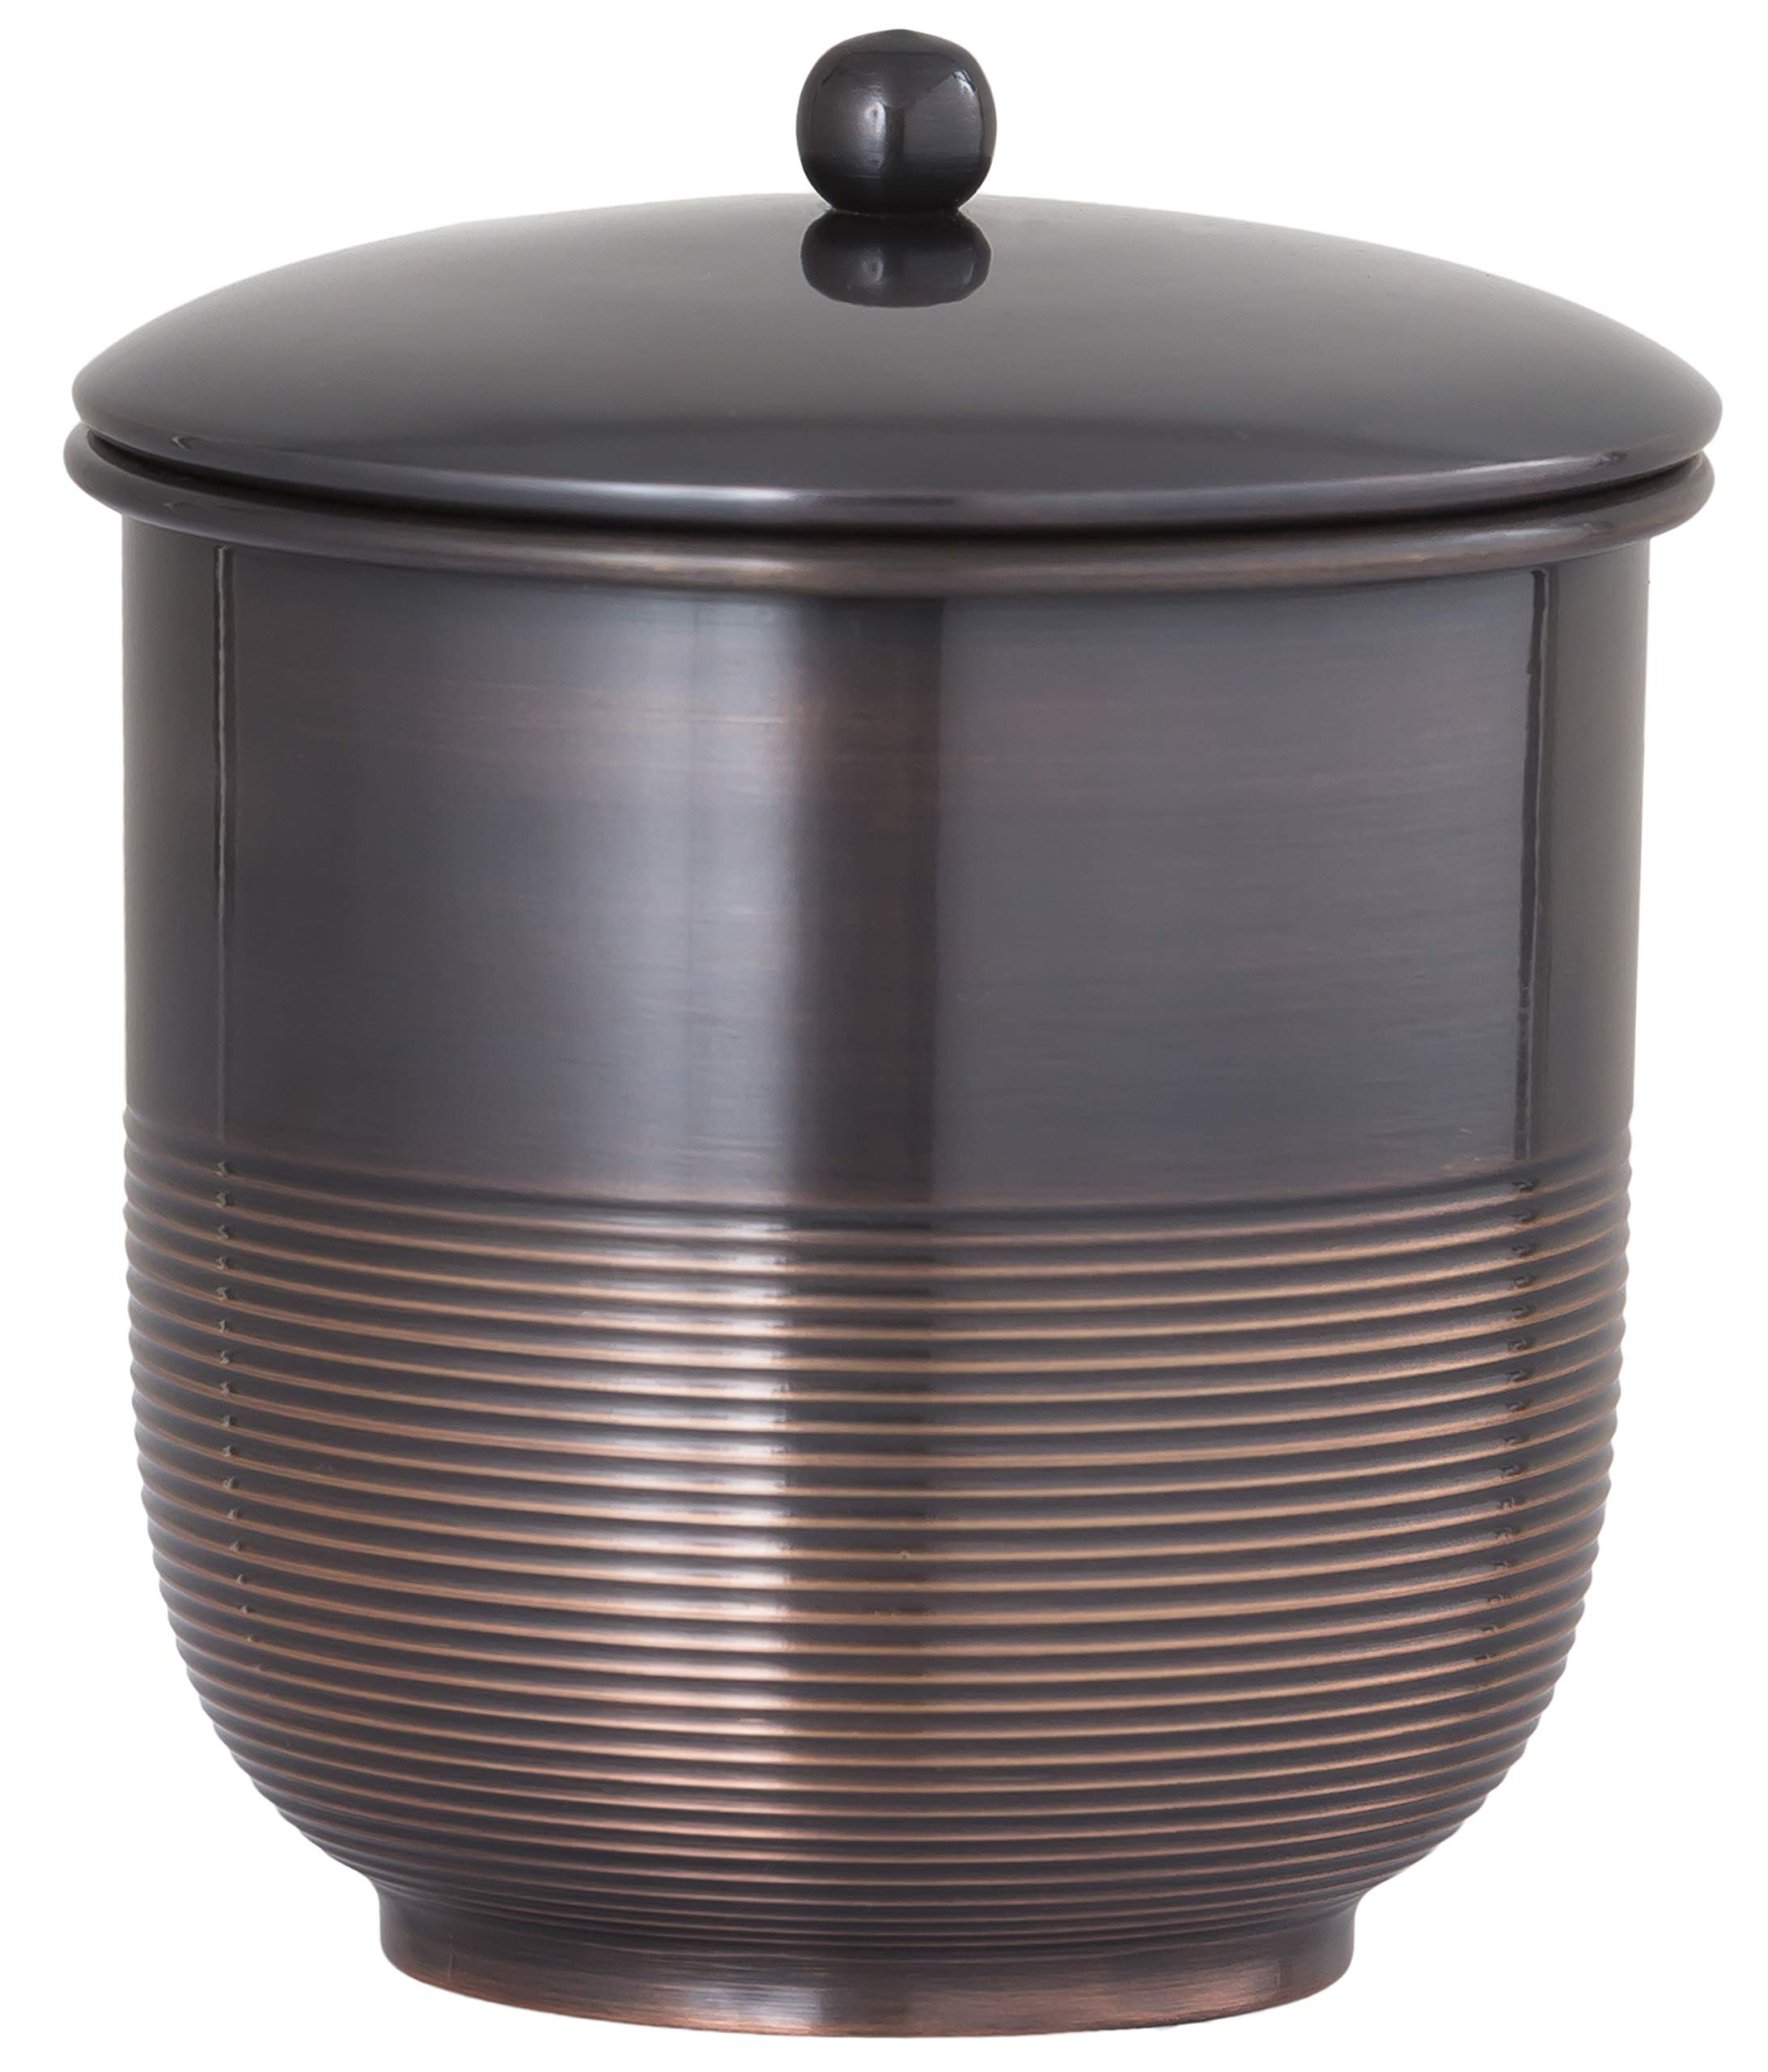 Buffalo Brand Trading Company, Heavyweight Brass, Oil Rubbed Bronze Finish, Cotton Jar, 3.5 Inches by 3.75 Inches